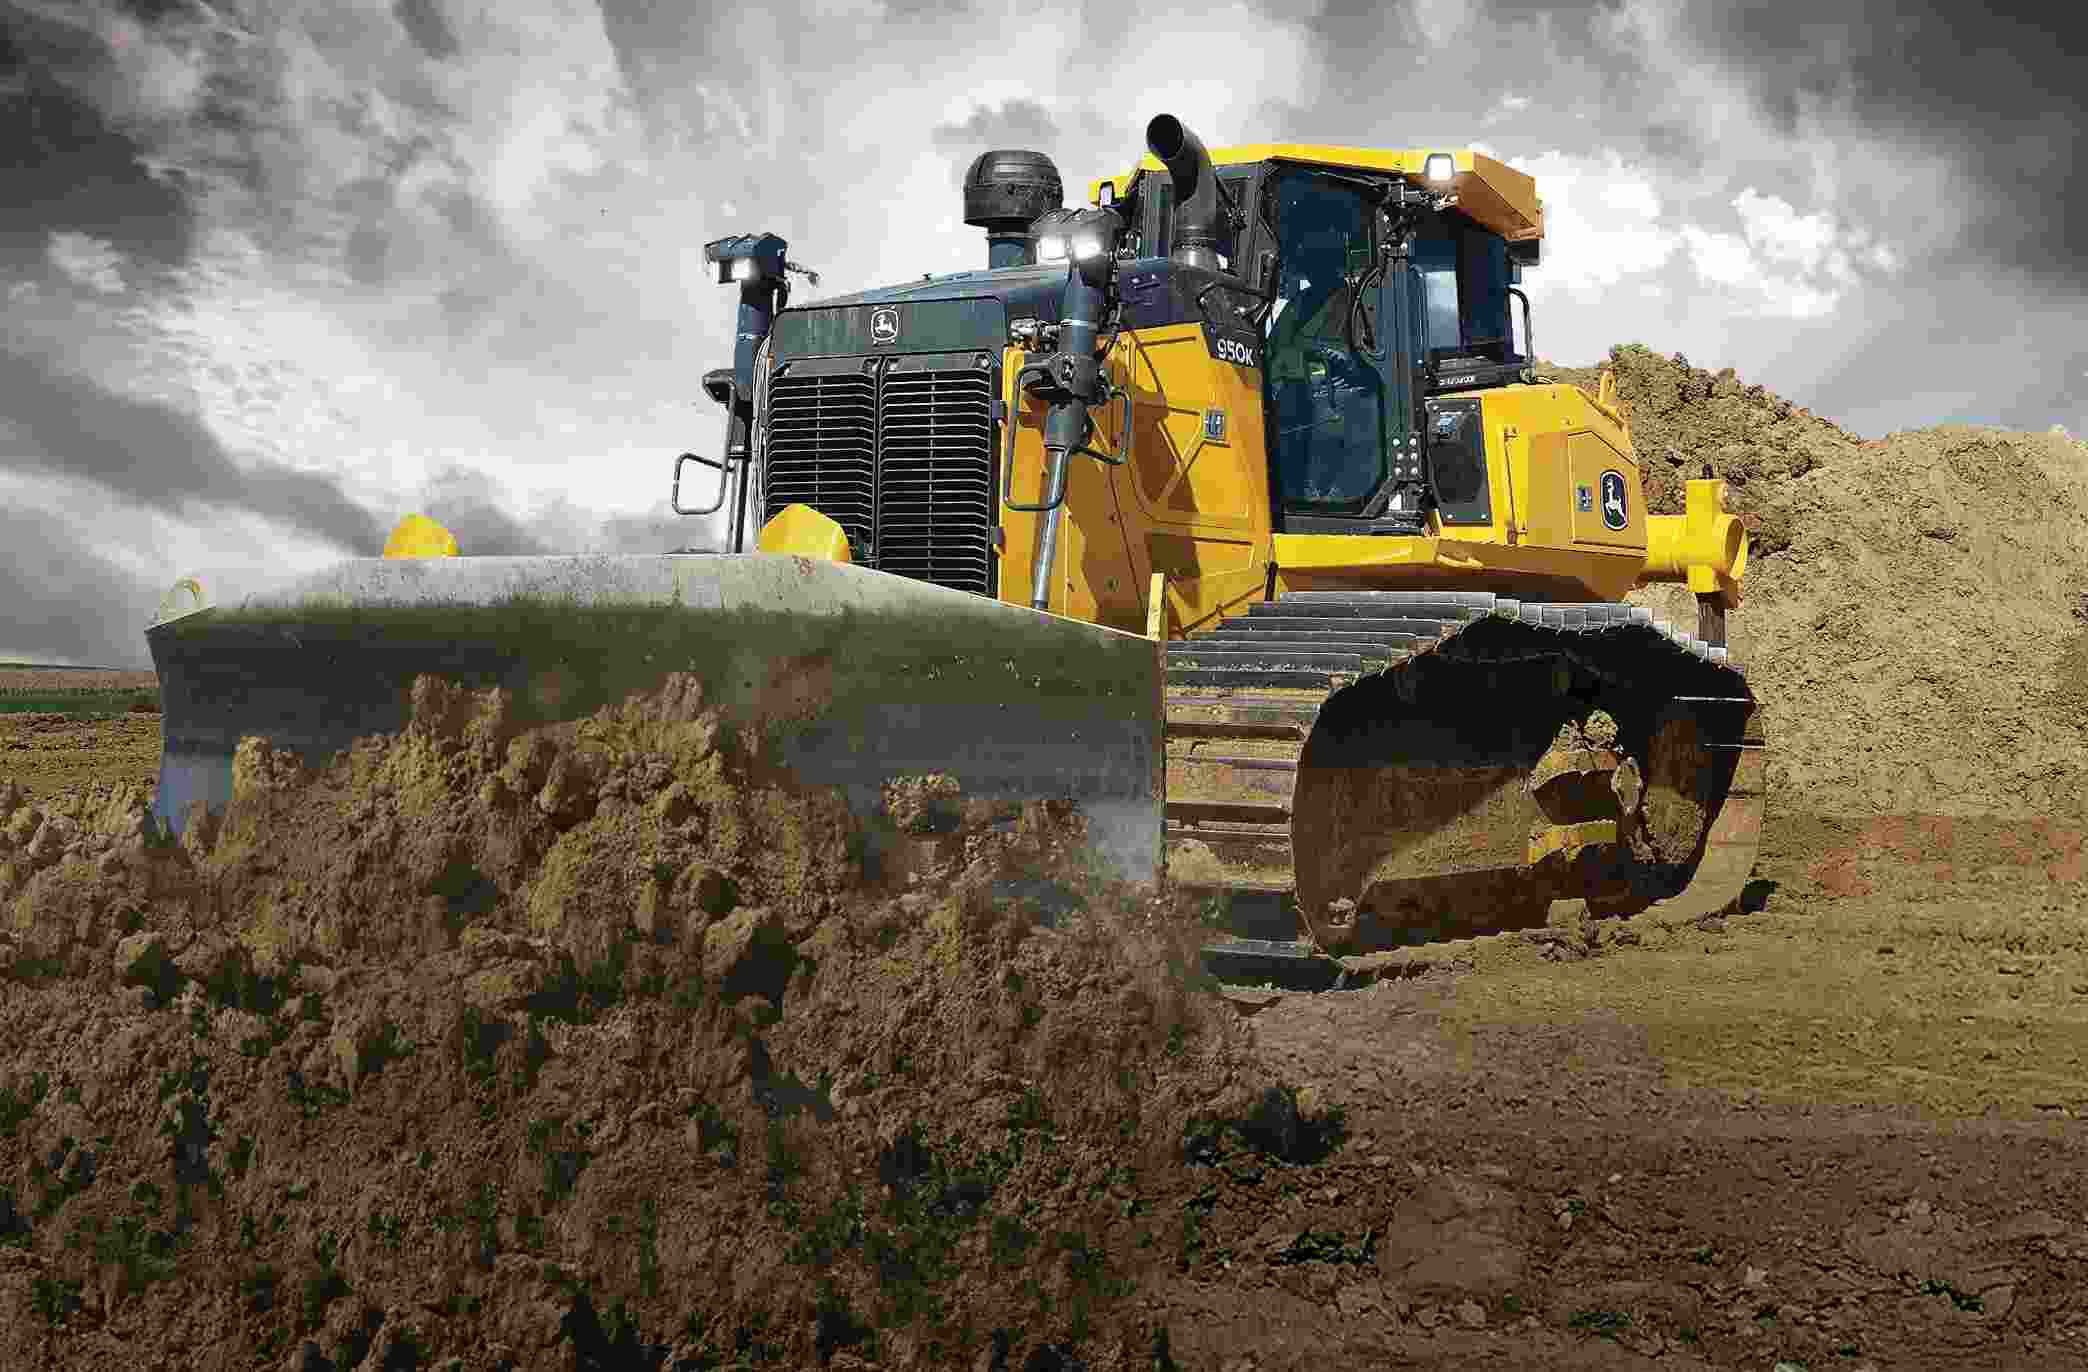 John Deere 950K Dozer pushing dirt